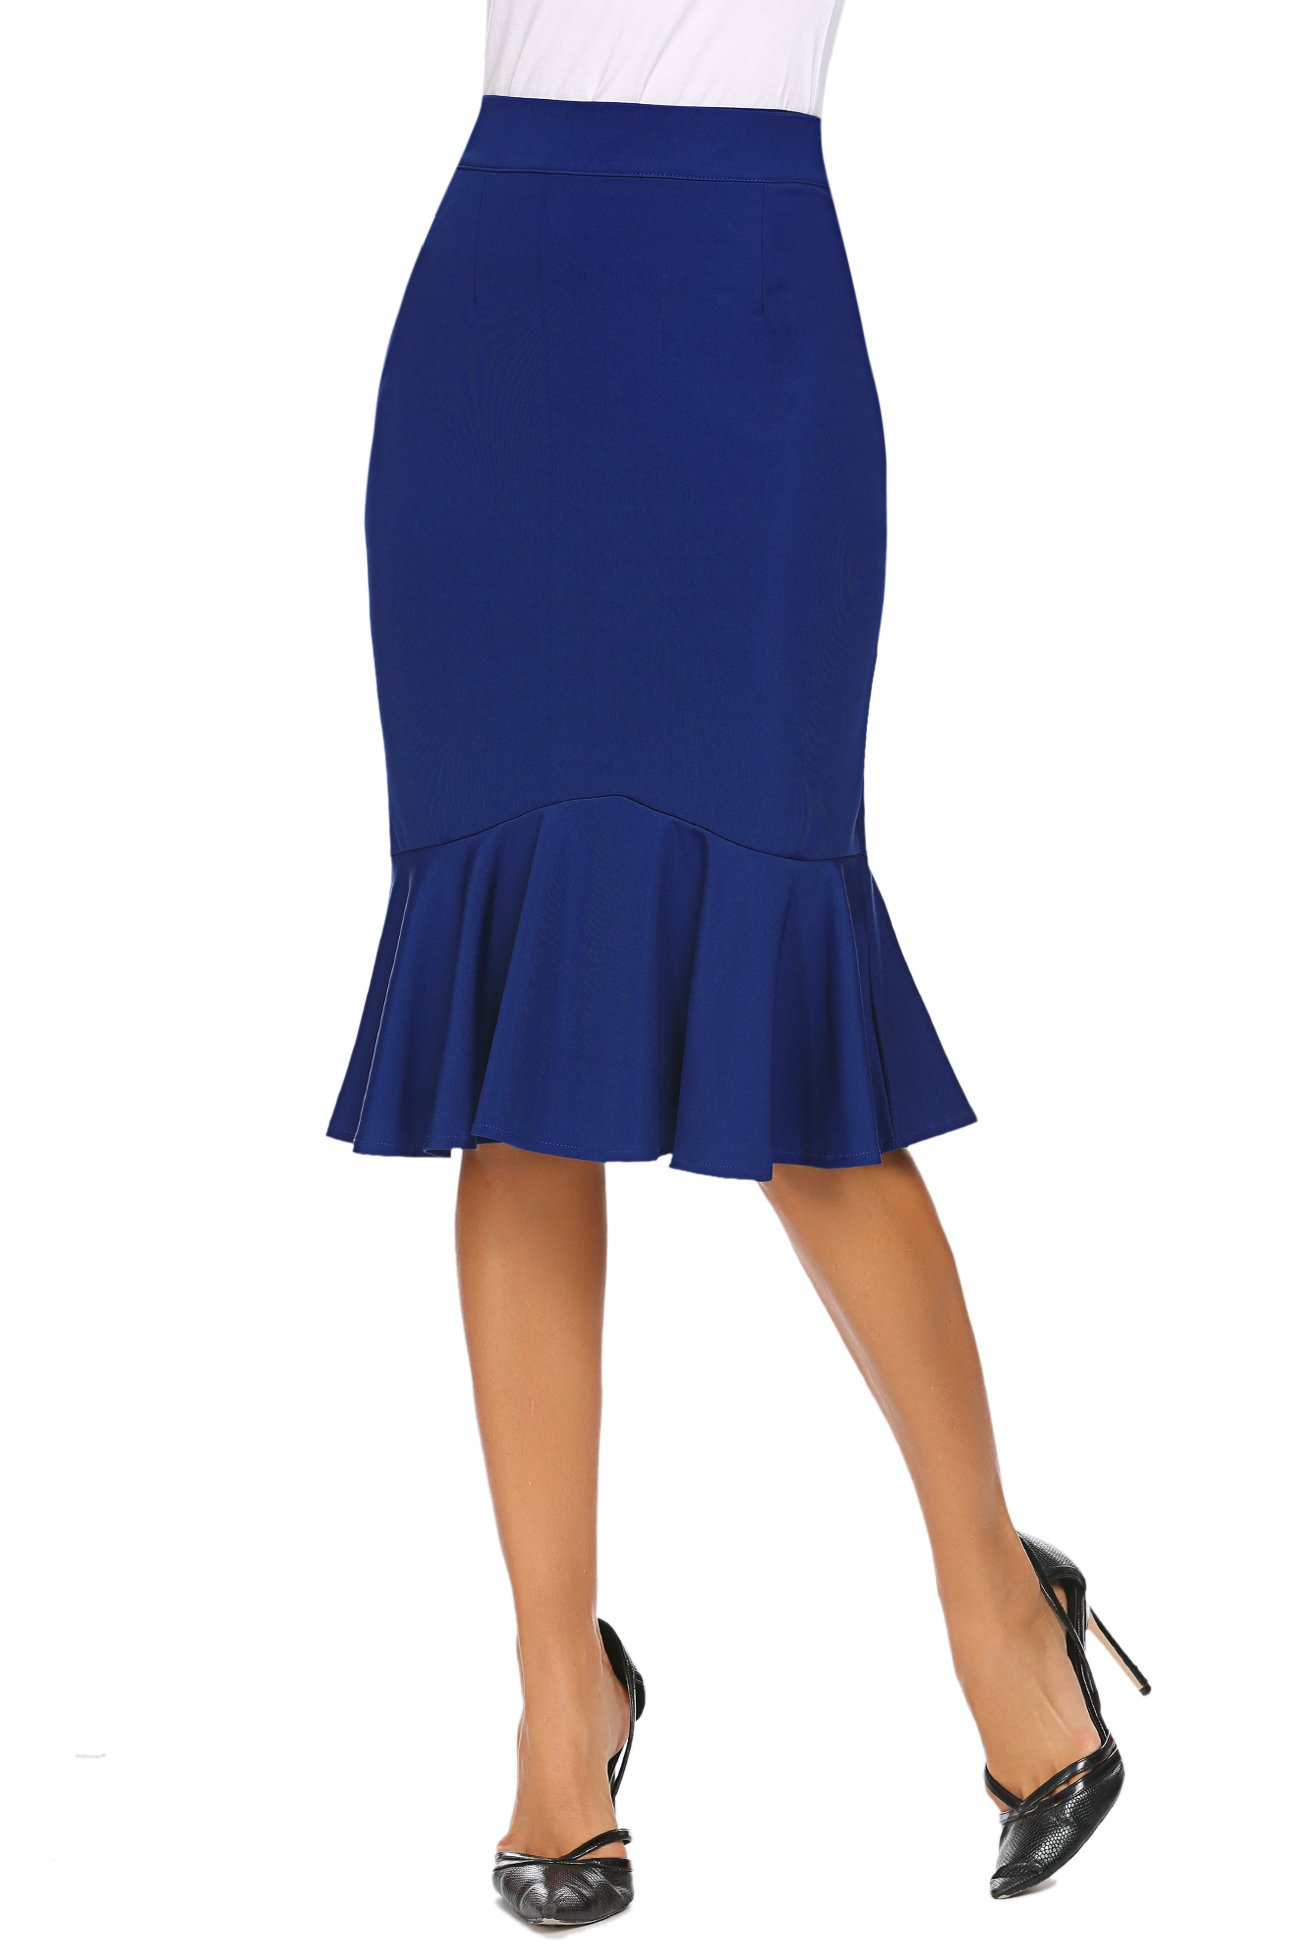 Women's Stretchy Wear to Work Pencil Skirt Slim Fit Business Skirt (S, Blue)